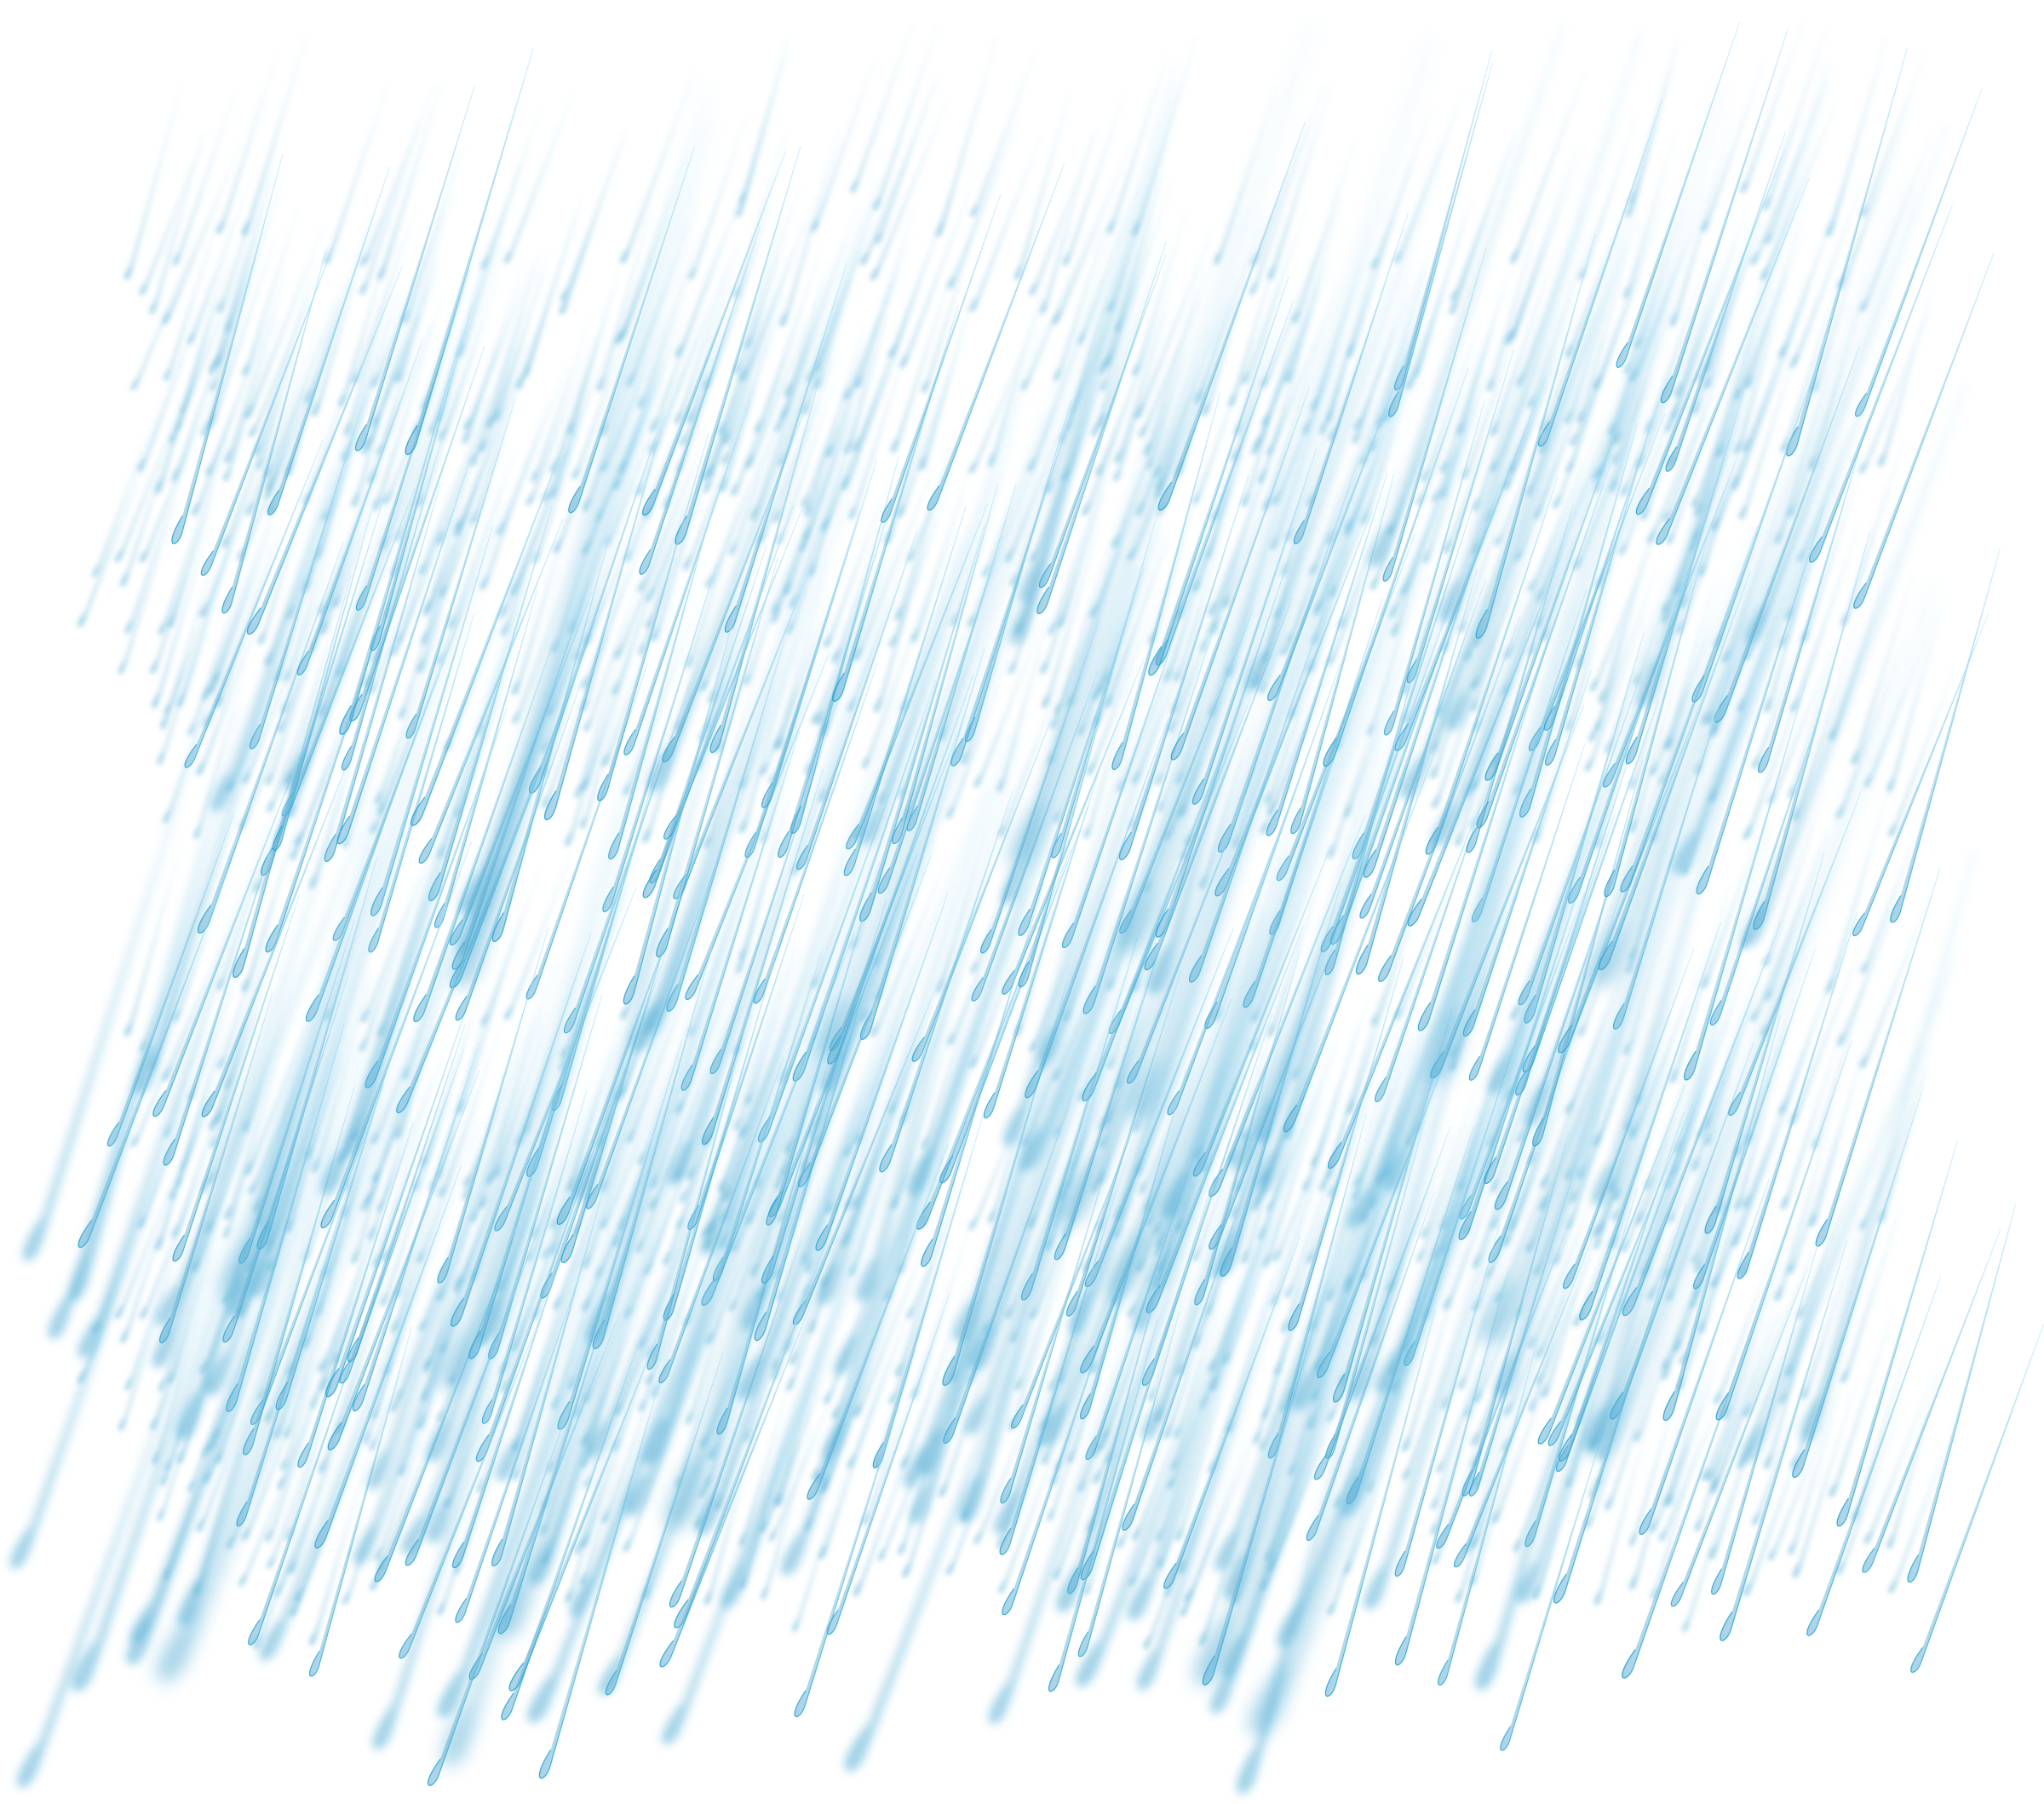 Falling rain png. Hd transparent images pluspng